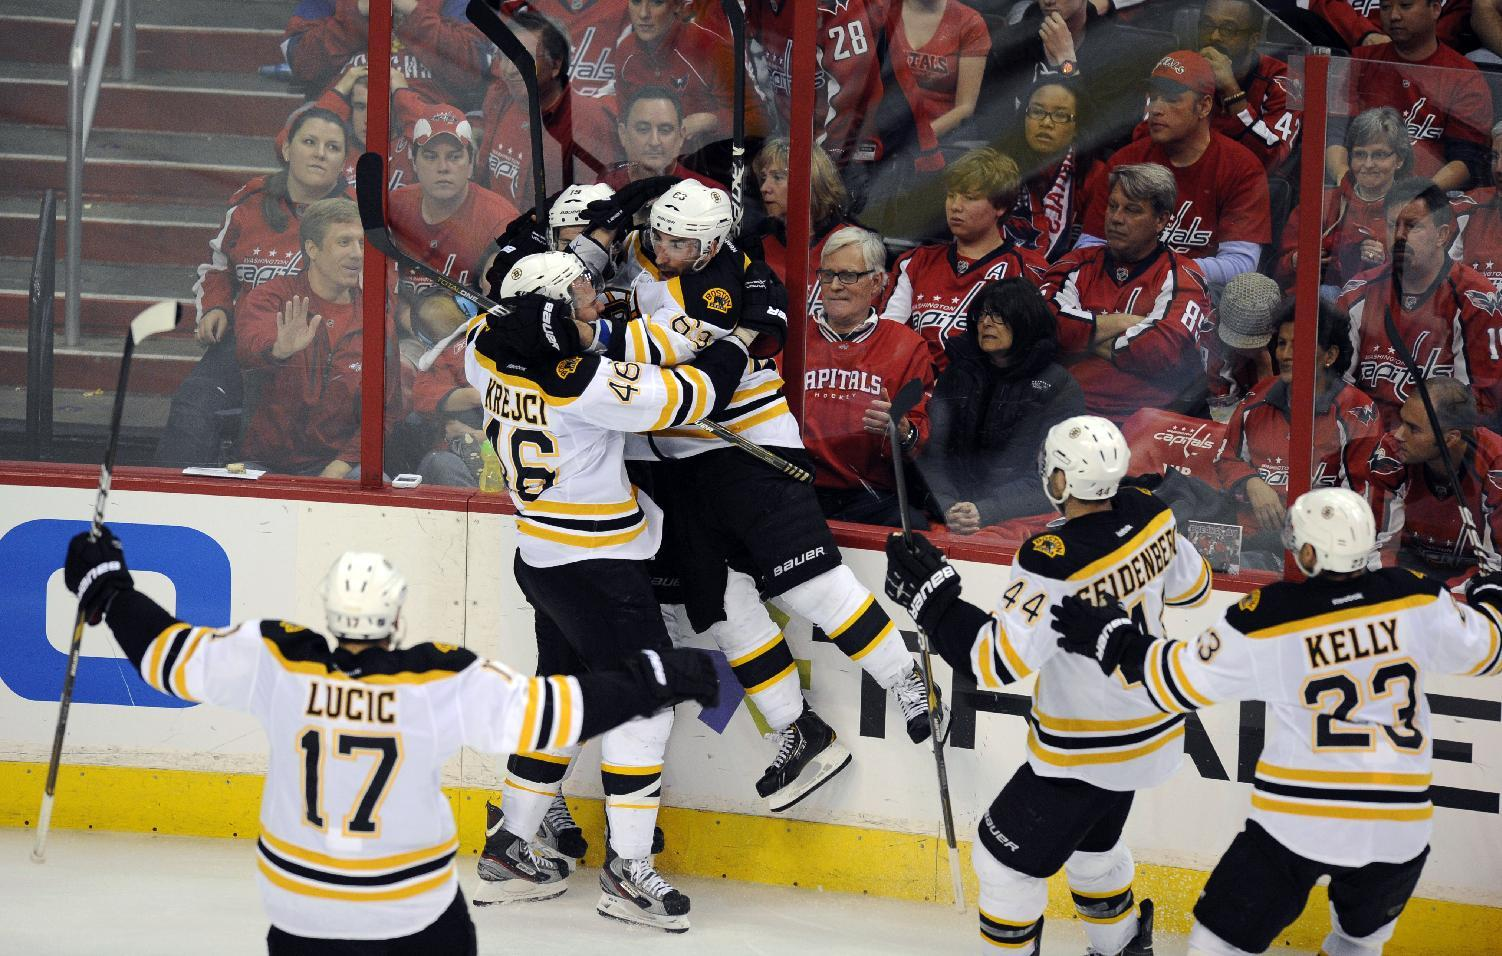 Members of the Boston Bruins including Brad Marchand (63), David Krejci (46), Milan Lucic (17), Dennis Seidenberg (44), of Germany, and Boston Bruins center Chris Kelly (23) celebrate with Tyler Seguin, top left, after Seguin scored the game-winning goal to beat the Washington Capitals 4-3 in overtime in Game 6 of an NHL hockey Stanley Cup first-round playoff series, Sunday, April 22, 2012, in Washington. (AP Photo/Nick Wass)